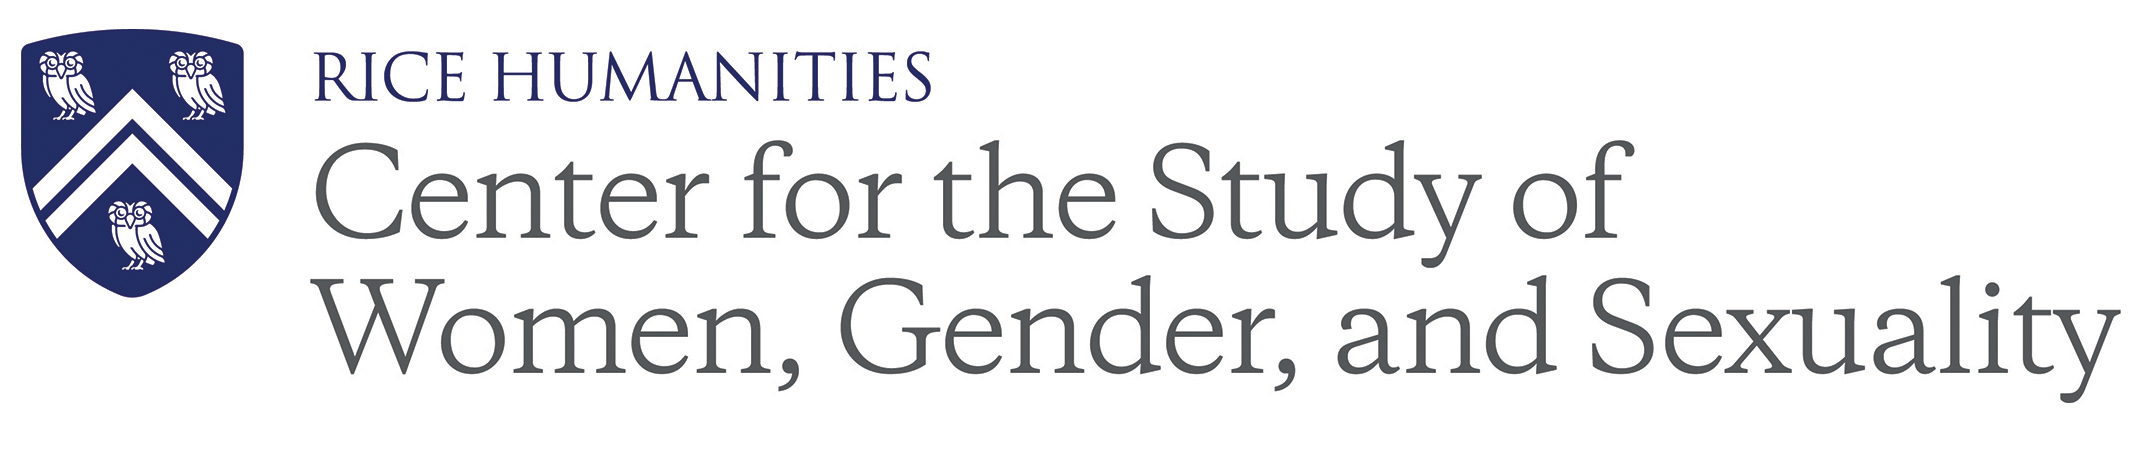 Rice Universtiy Center for the Study of Women, Center, and Sexuality